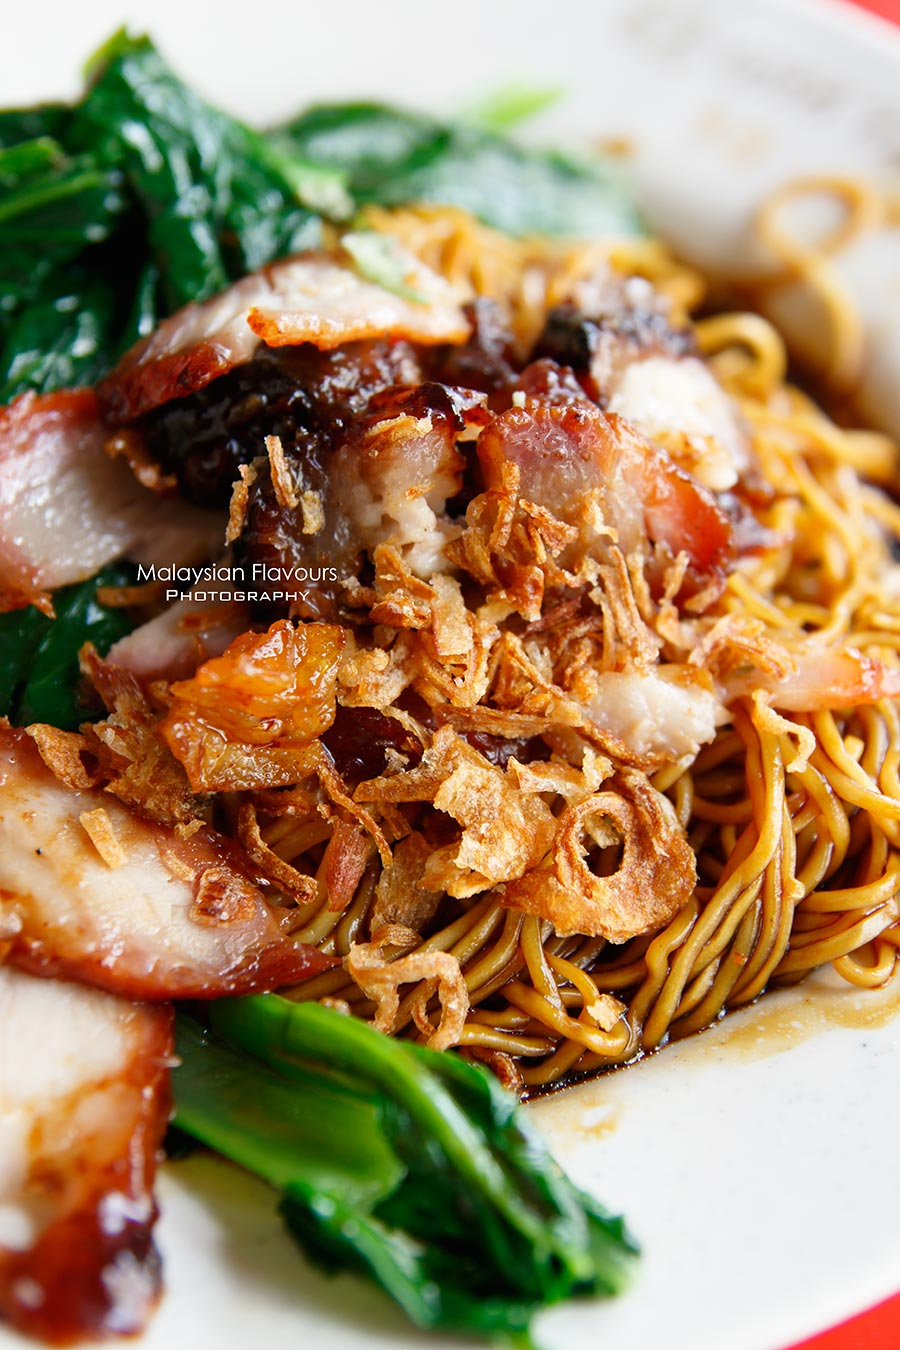 restoran-168-curry-mee-and-wantan-mee-pudu-kl